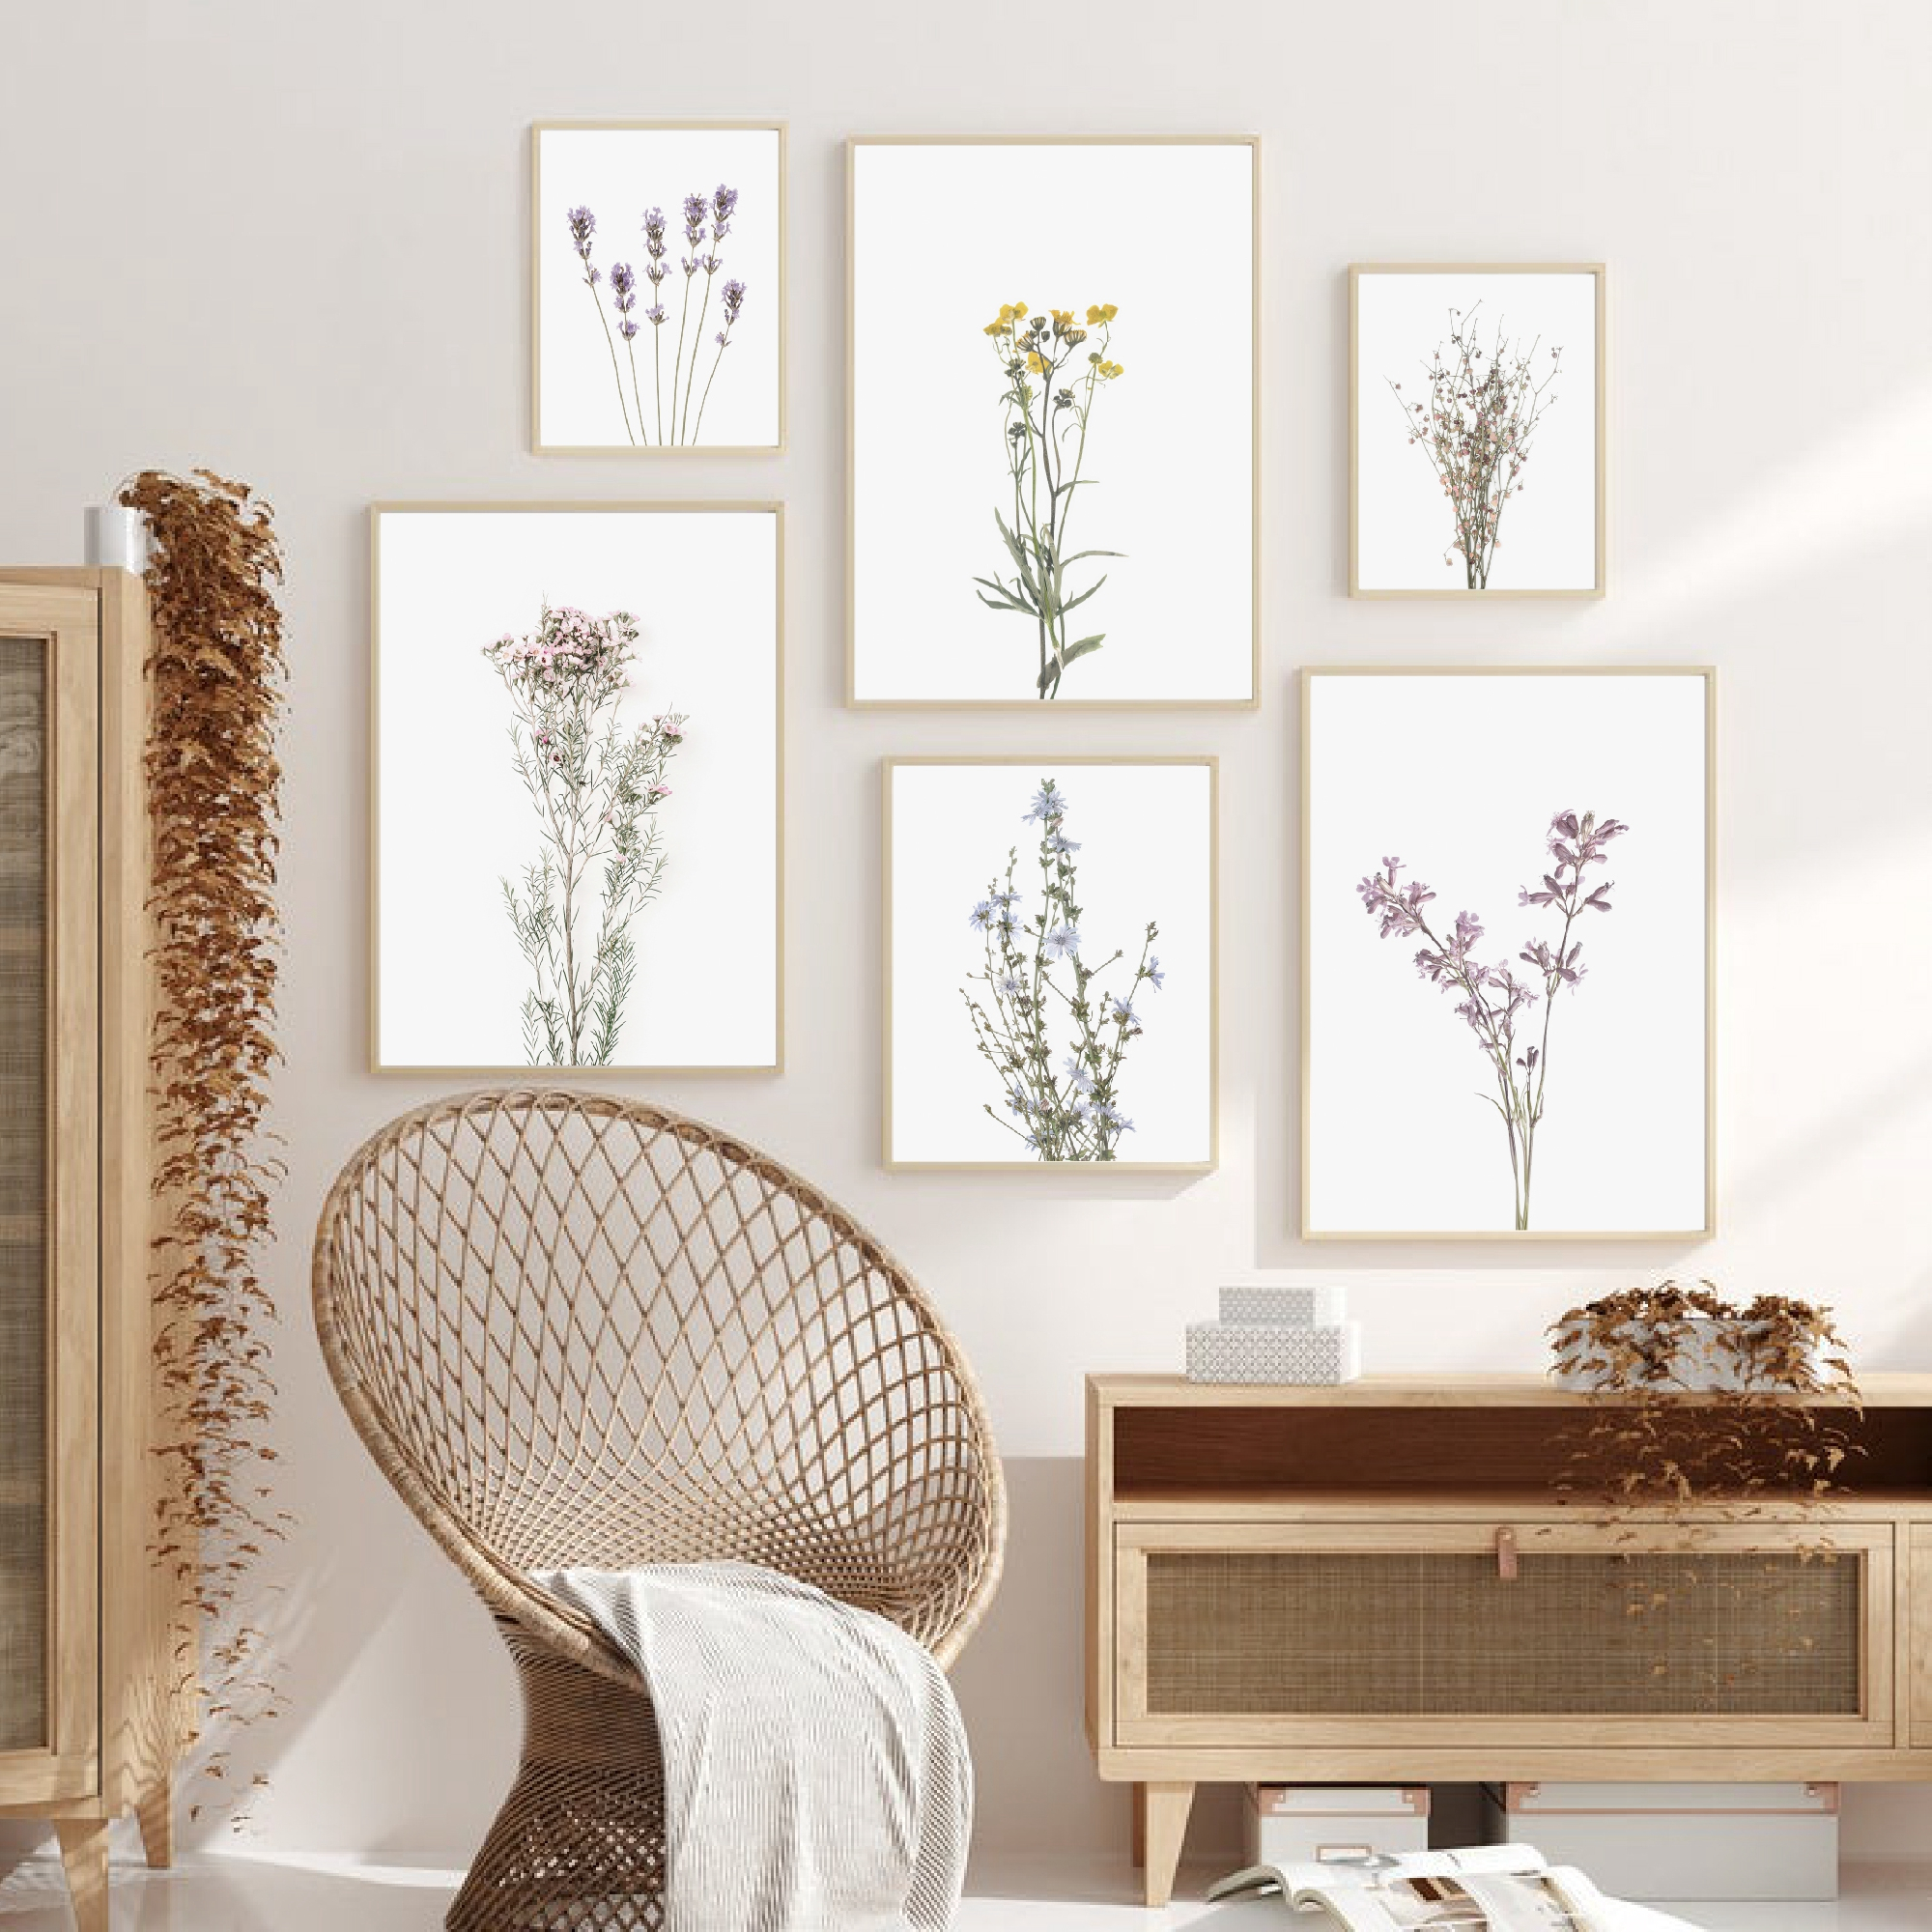 Flowers Botanical Scandinavian Posters Wildflowers Nordic Style Gallery Wall Art Prints Decorative Painting Pictures Home Decor